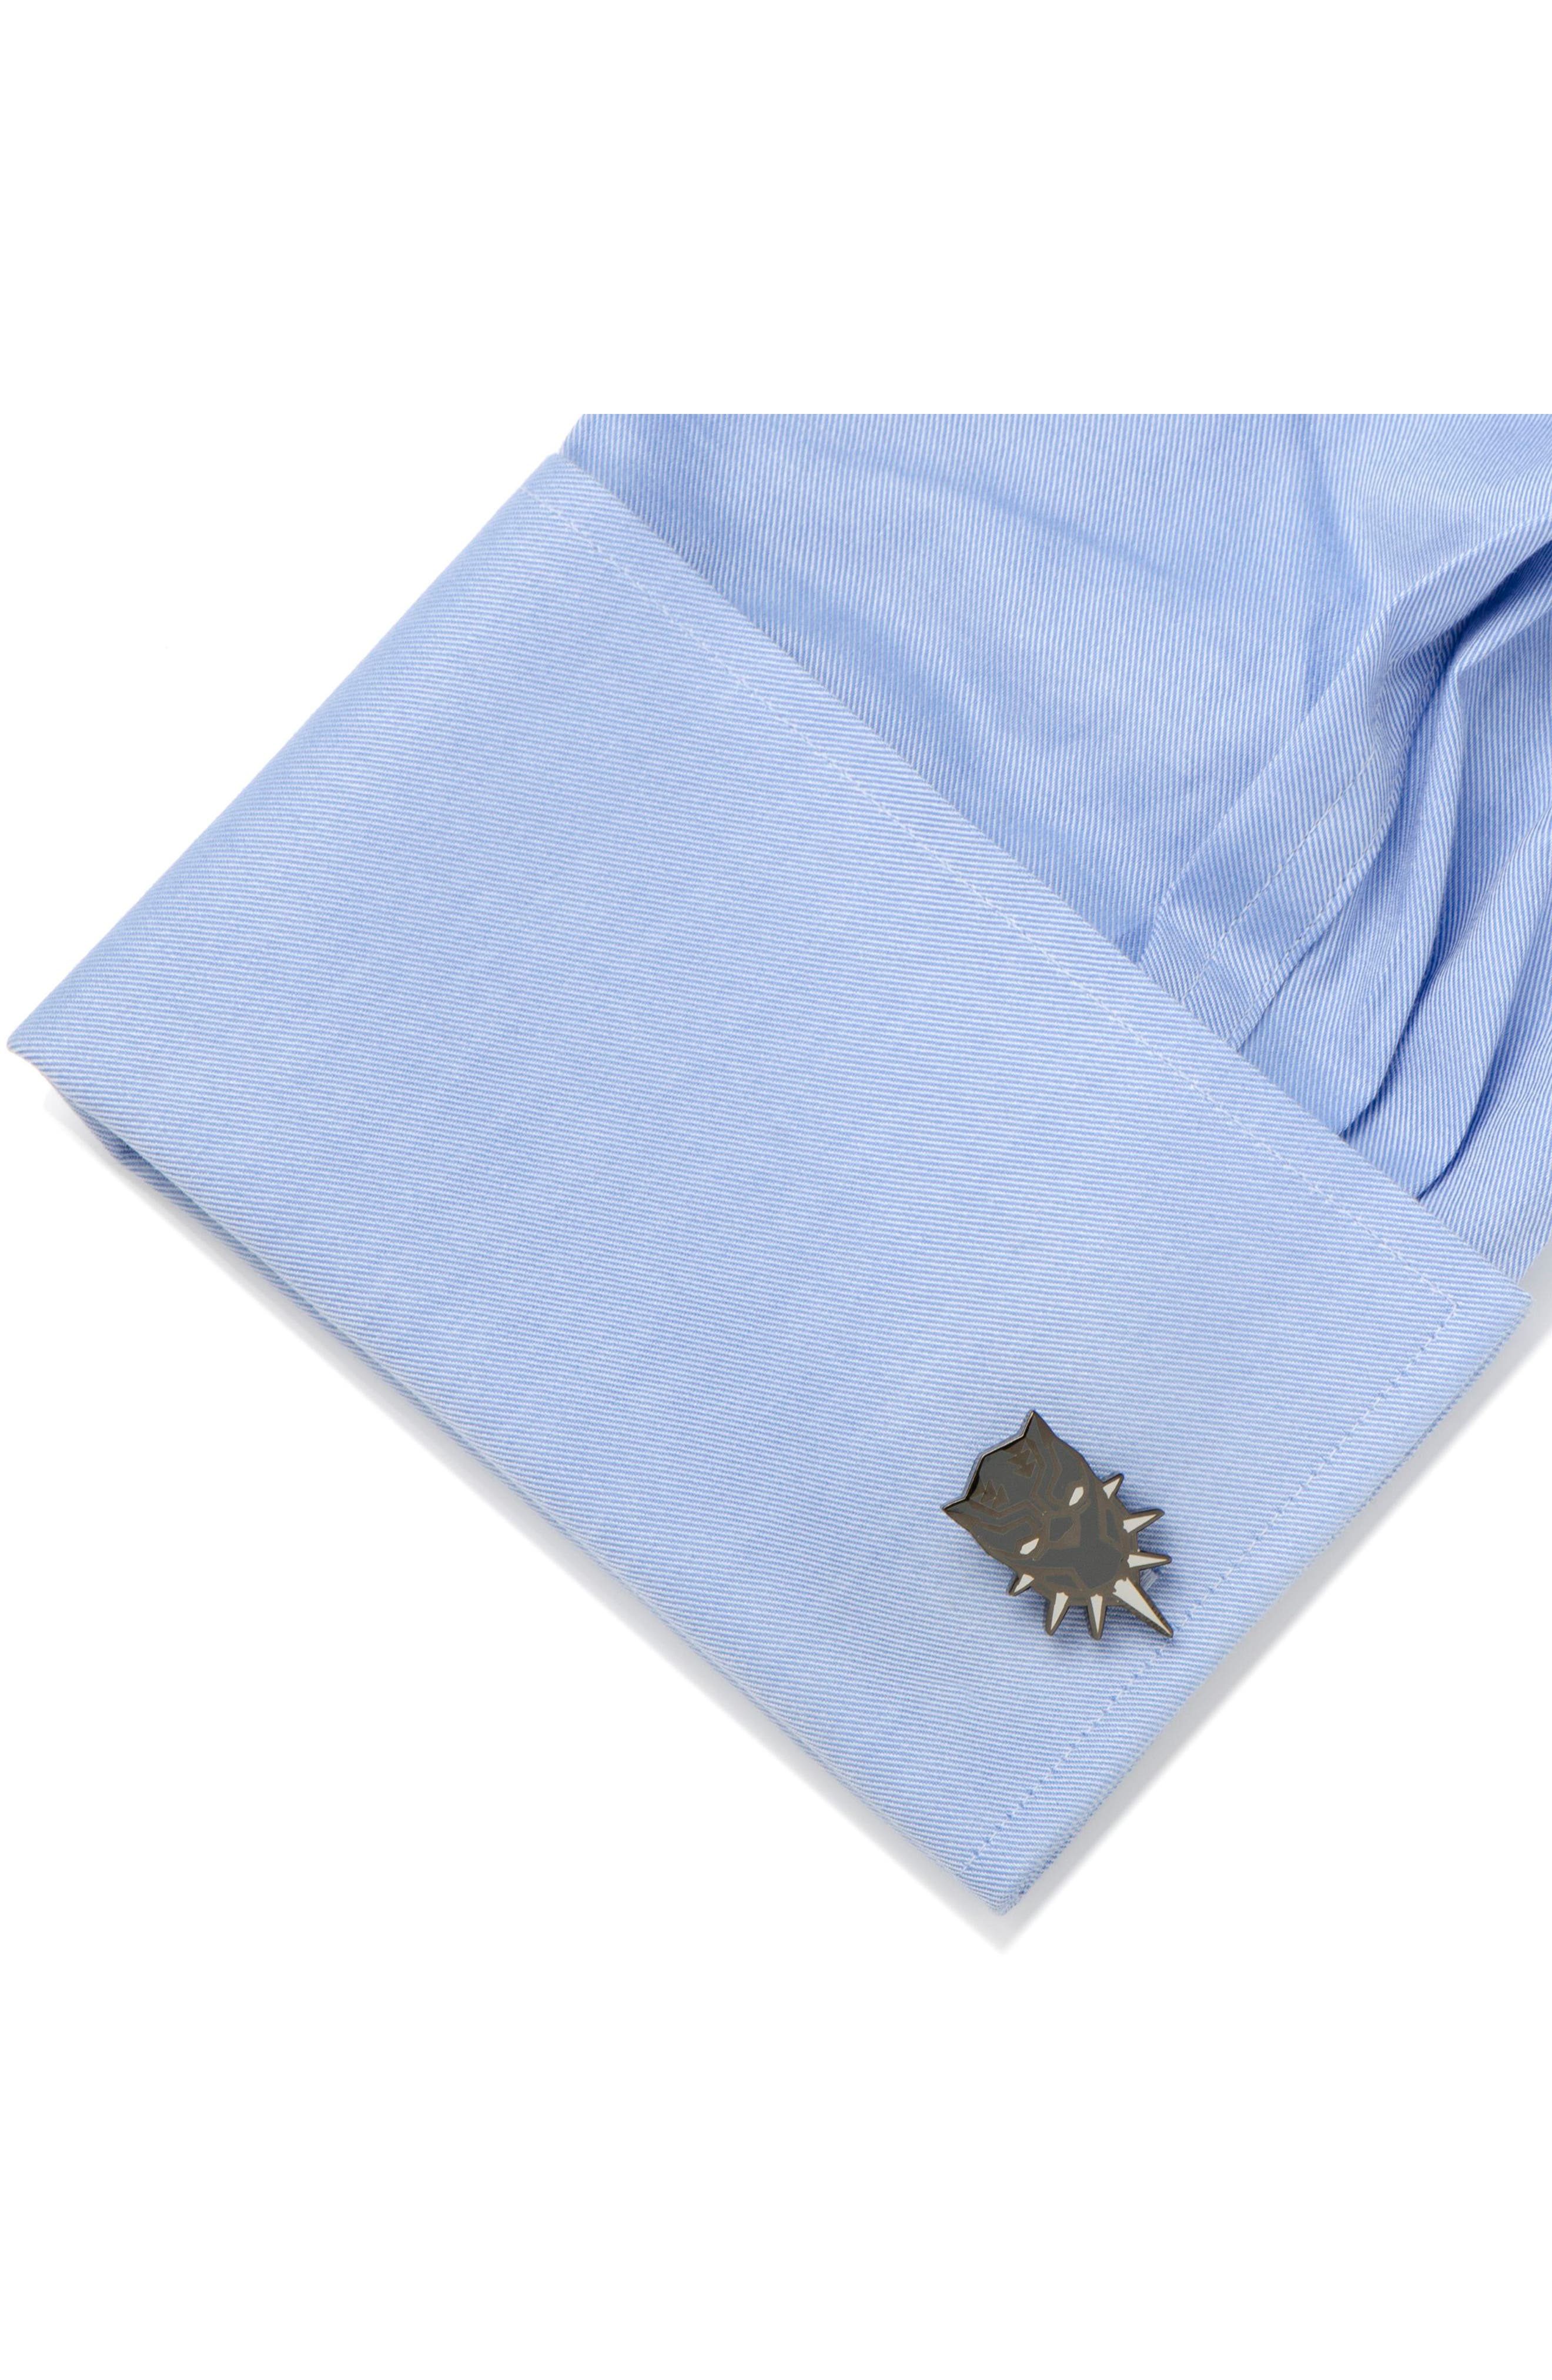 Black Panther Cuff Links,                             Alternate thumbnail 3, color,                             Black